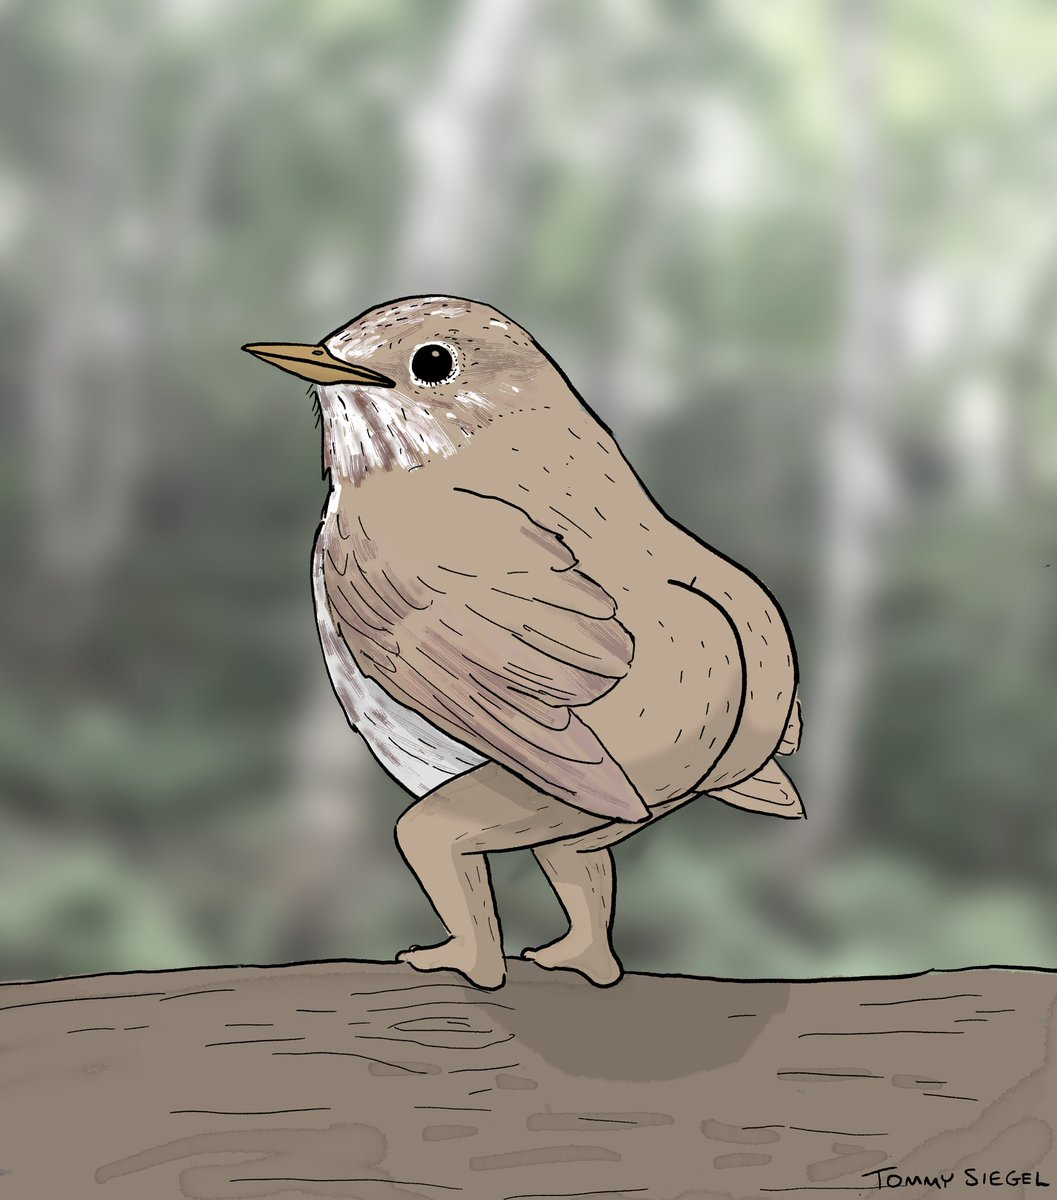 ok so i got some constructive criticism from my first attempt at drawing birds. many people said the legs weren't realistic enough, i think i finally got it though, lemme know what you think